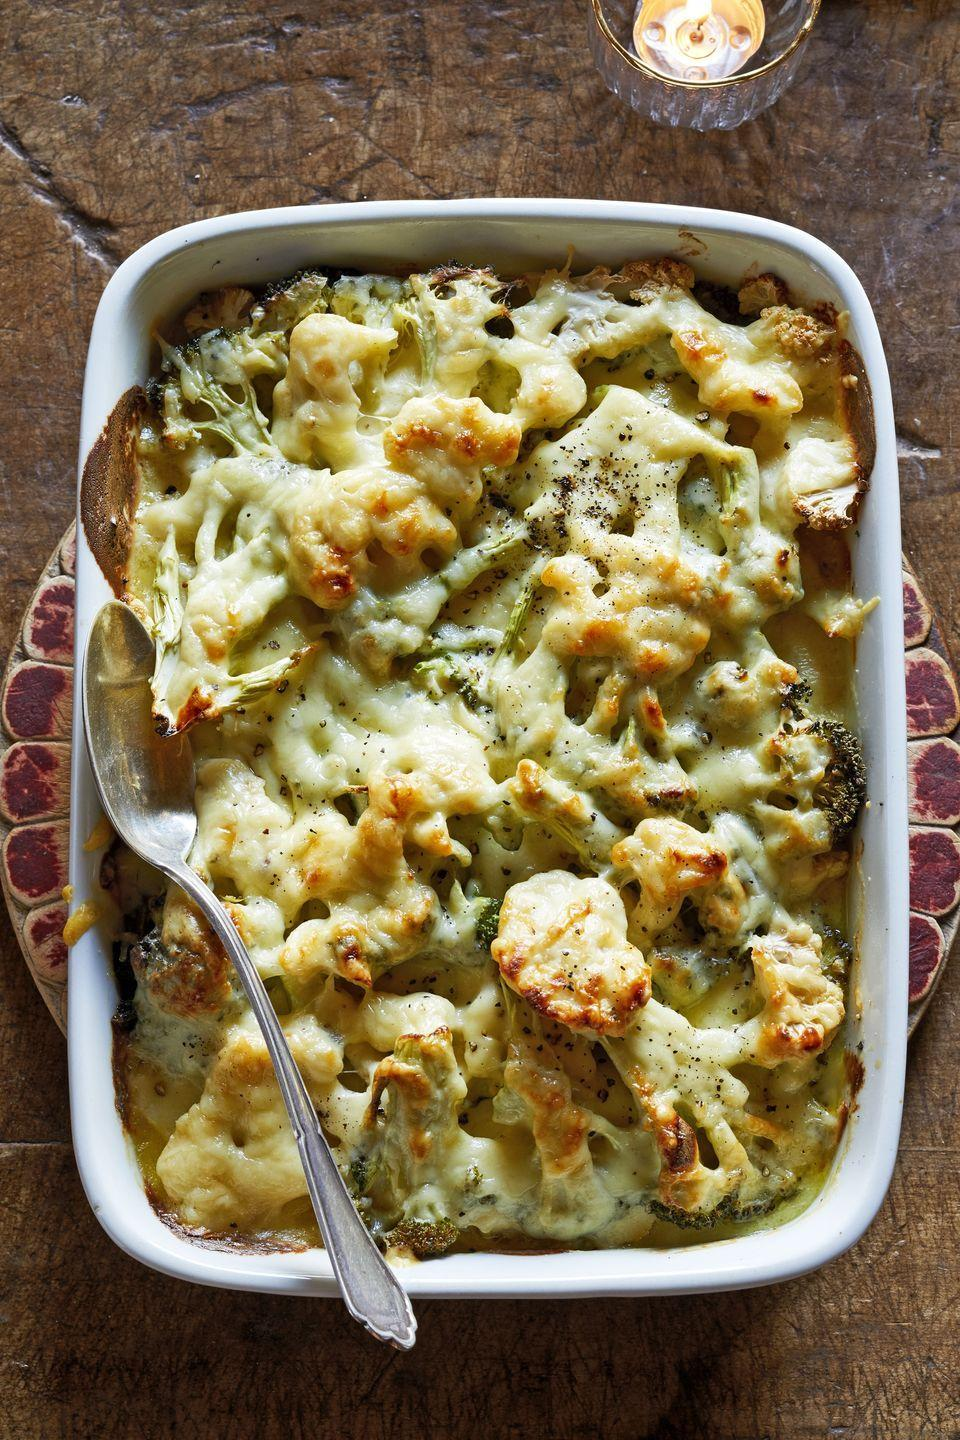 "<p>As far as side dishes go, it will be hard to pass up this broccoli and cauliflower recipe. Even your children won't be able to resist vegetables covered in cheese.</p><p><strong><a href=""https://www.countryliving.com/food-drinks/a29134443/broccoli-and-cauliflower-gratin/"" rel=""nofollow noopener"" target=""_blank"" data-ylk=""slk:Get the recipe"" class=""link rapid-noclick-resp"">Get the recipe</a>.</strong></p><p><strong><a class=""link rapid-noclick-resp"" href=""https://www.amazon.com/dp/B074Z5X8MT/?tag=syn-yahoo-20&ascsubtag=%5Bartid%7C10050.g.896%5Bsrc%7Cyahoo-us"" rel=""nofollow noopener"" target=""_blank"" data-ylk=""slk:SHOP BAKING DISHES"">SHOP BAKING DISHES</a><br></strong></p>"